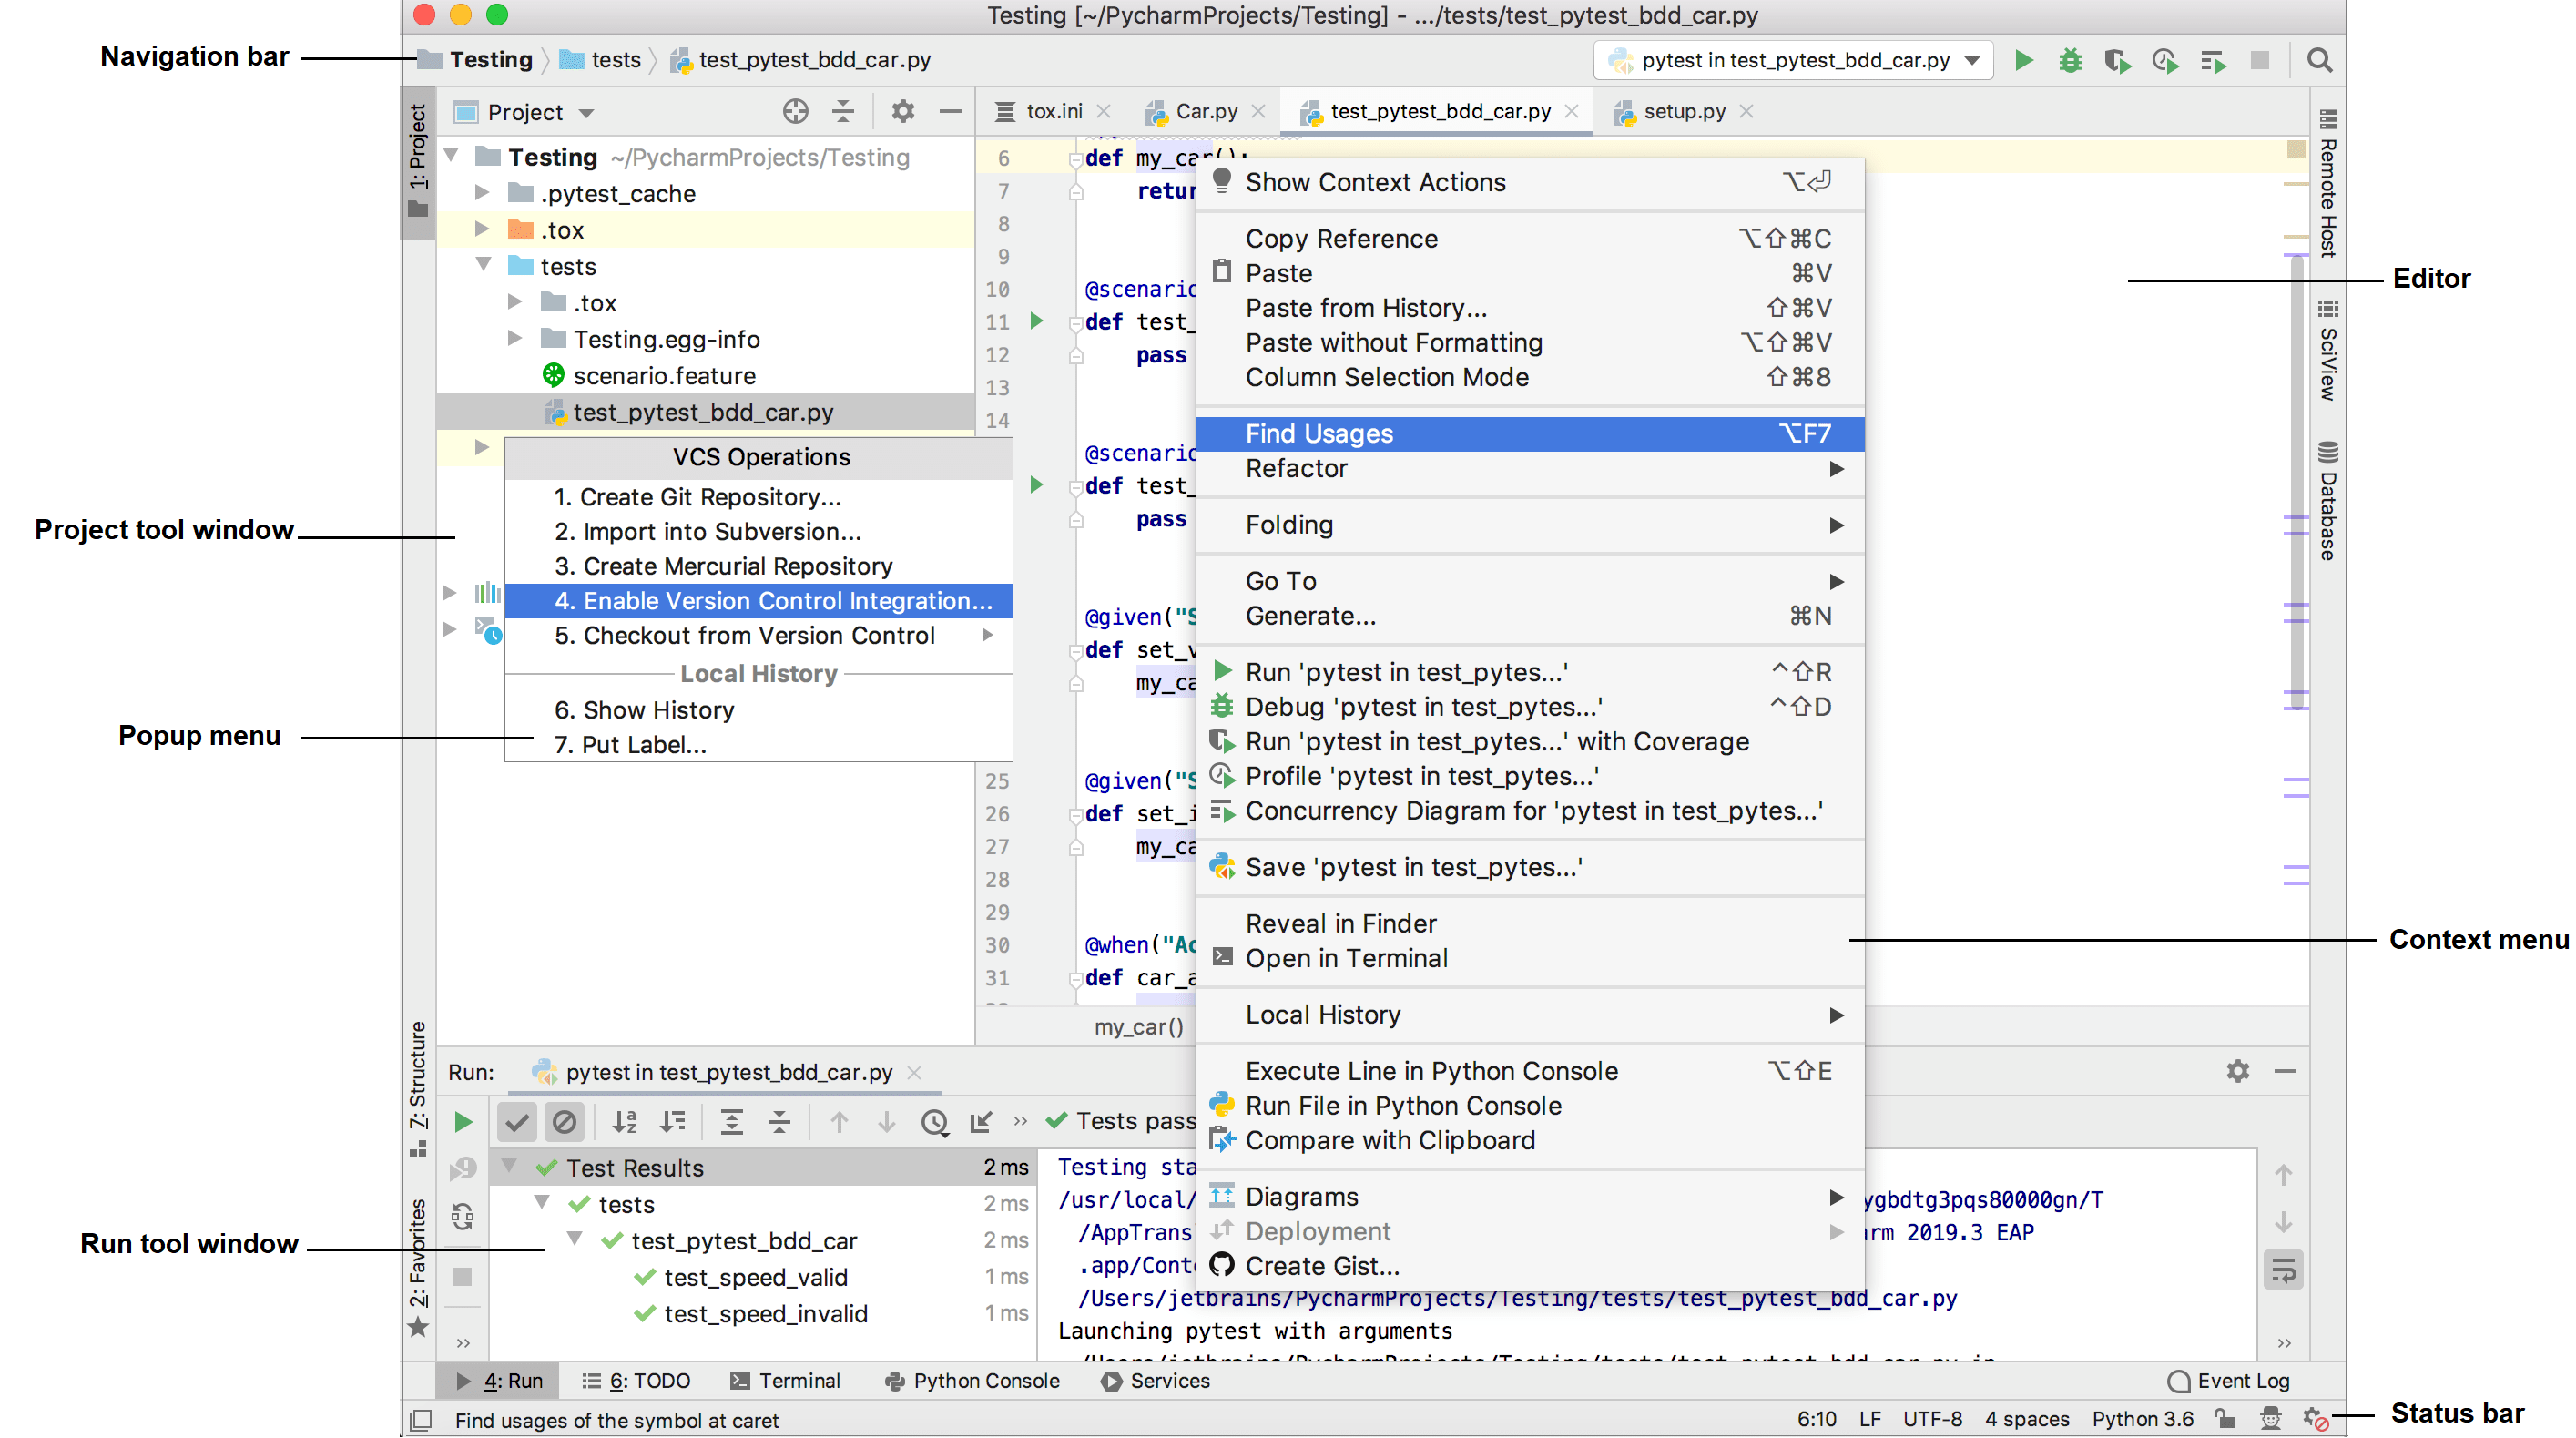 Overview of the user interface - Help | PyCharm